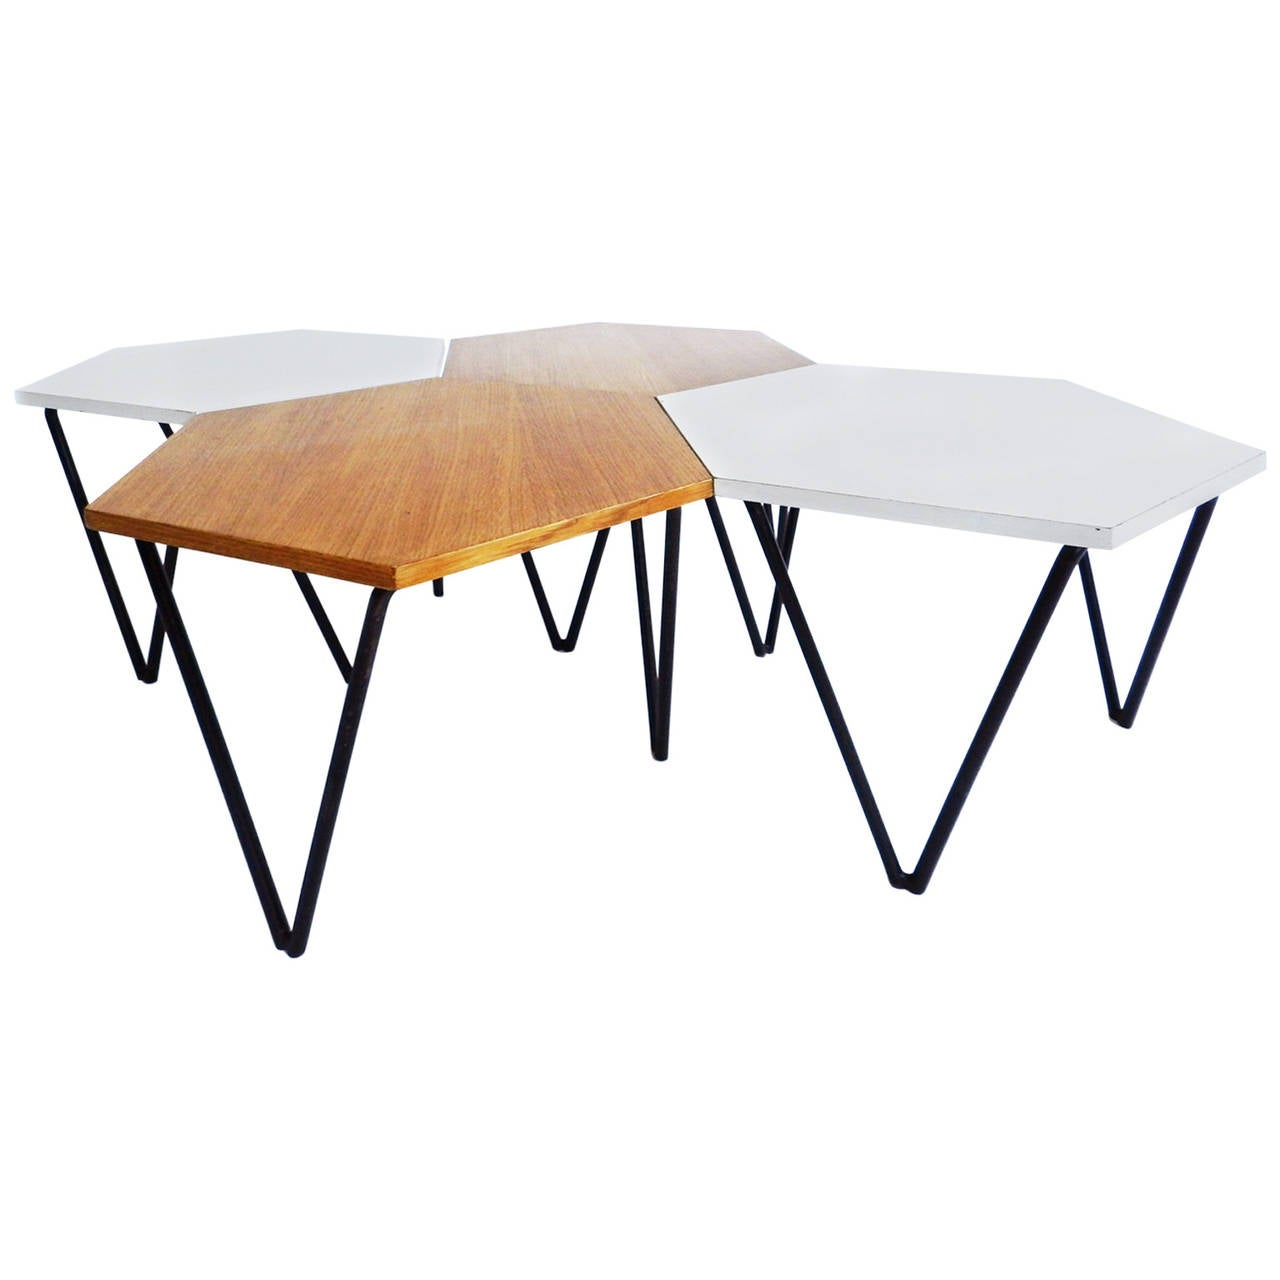 Set of 4 gio ponti laminated and wood modular coffee tables for isa at 1stdibs Side and coffee tables